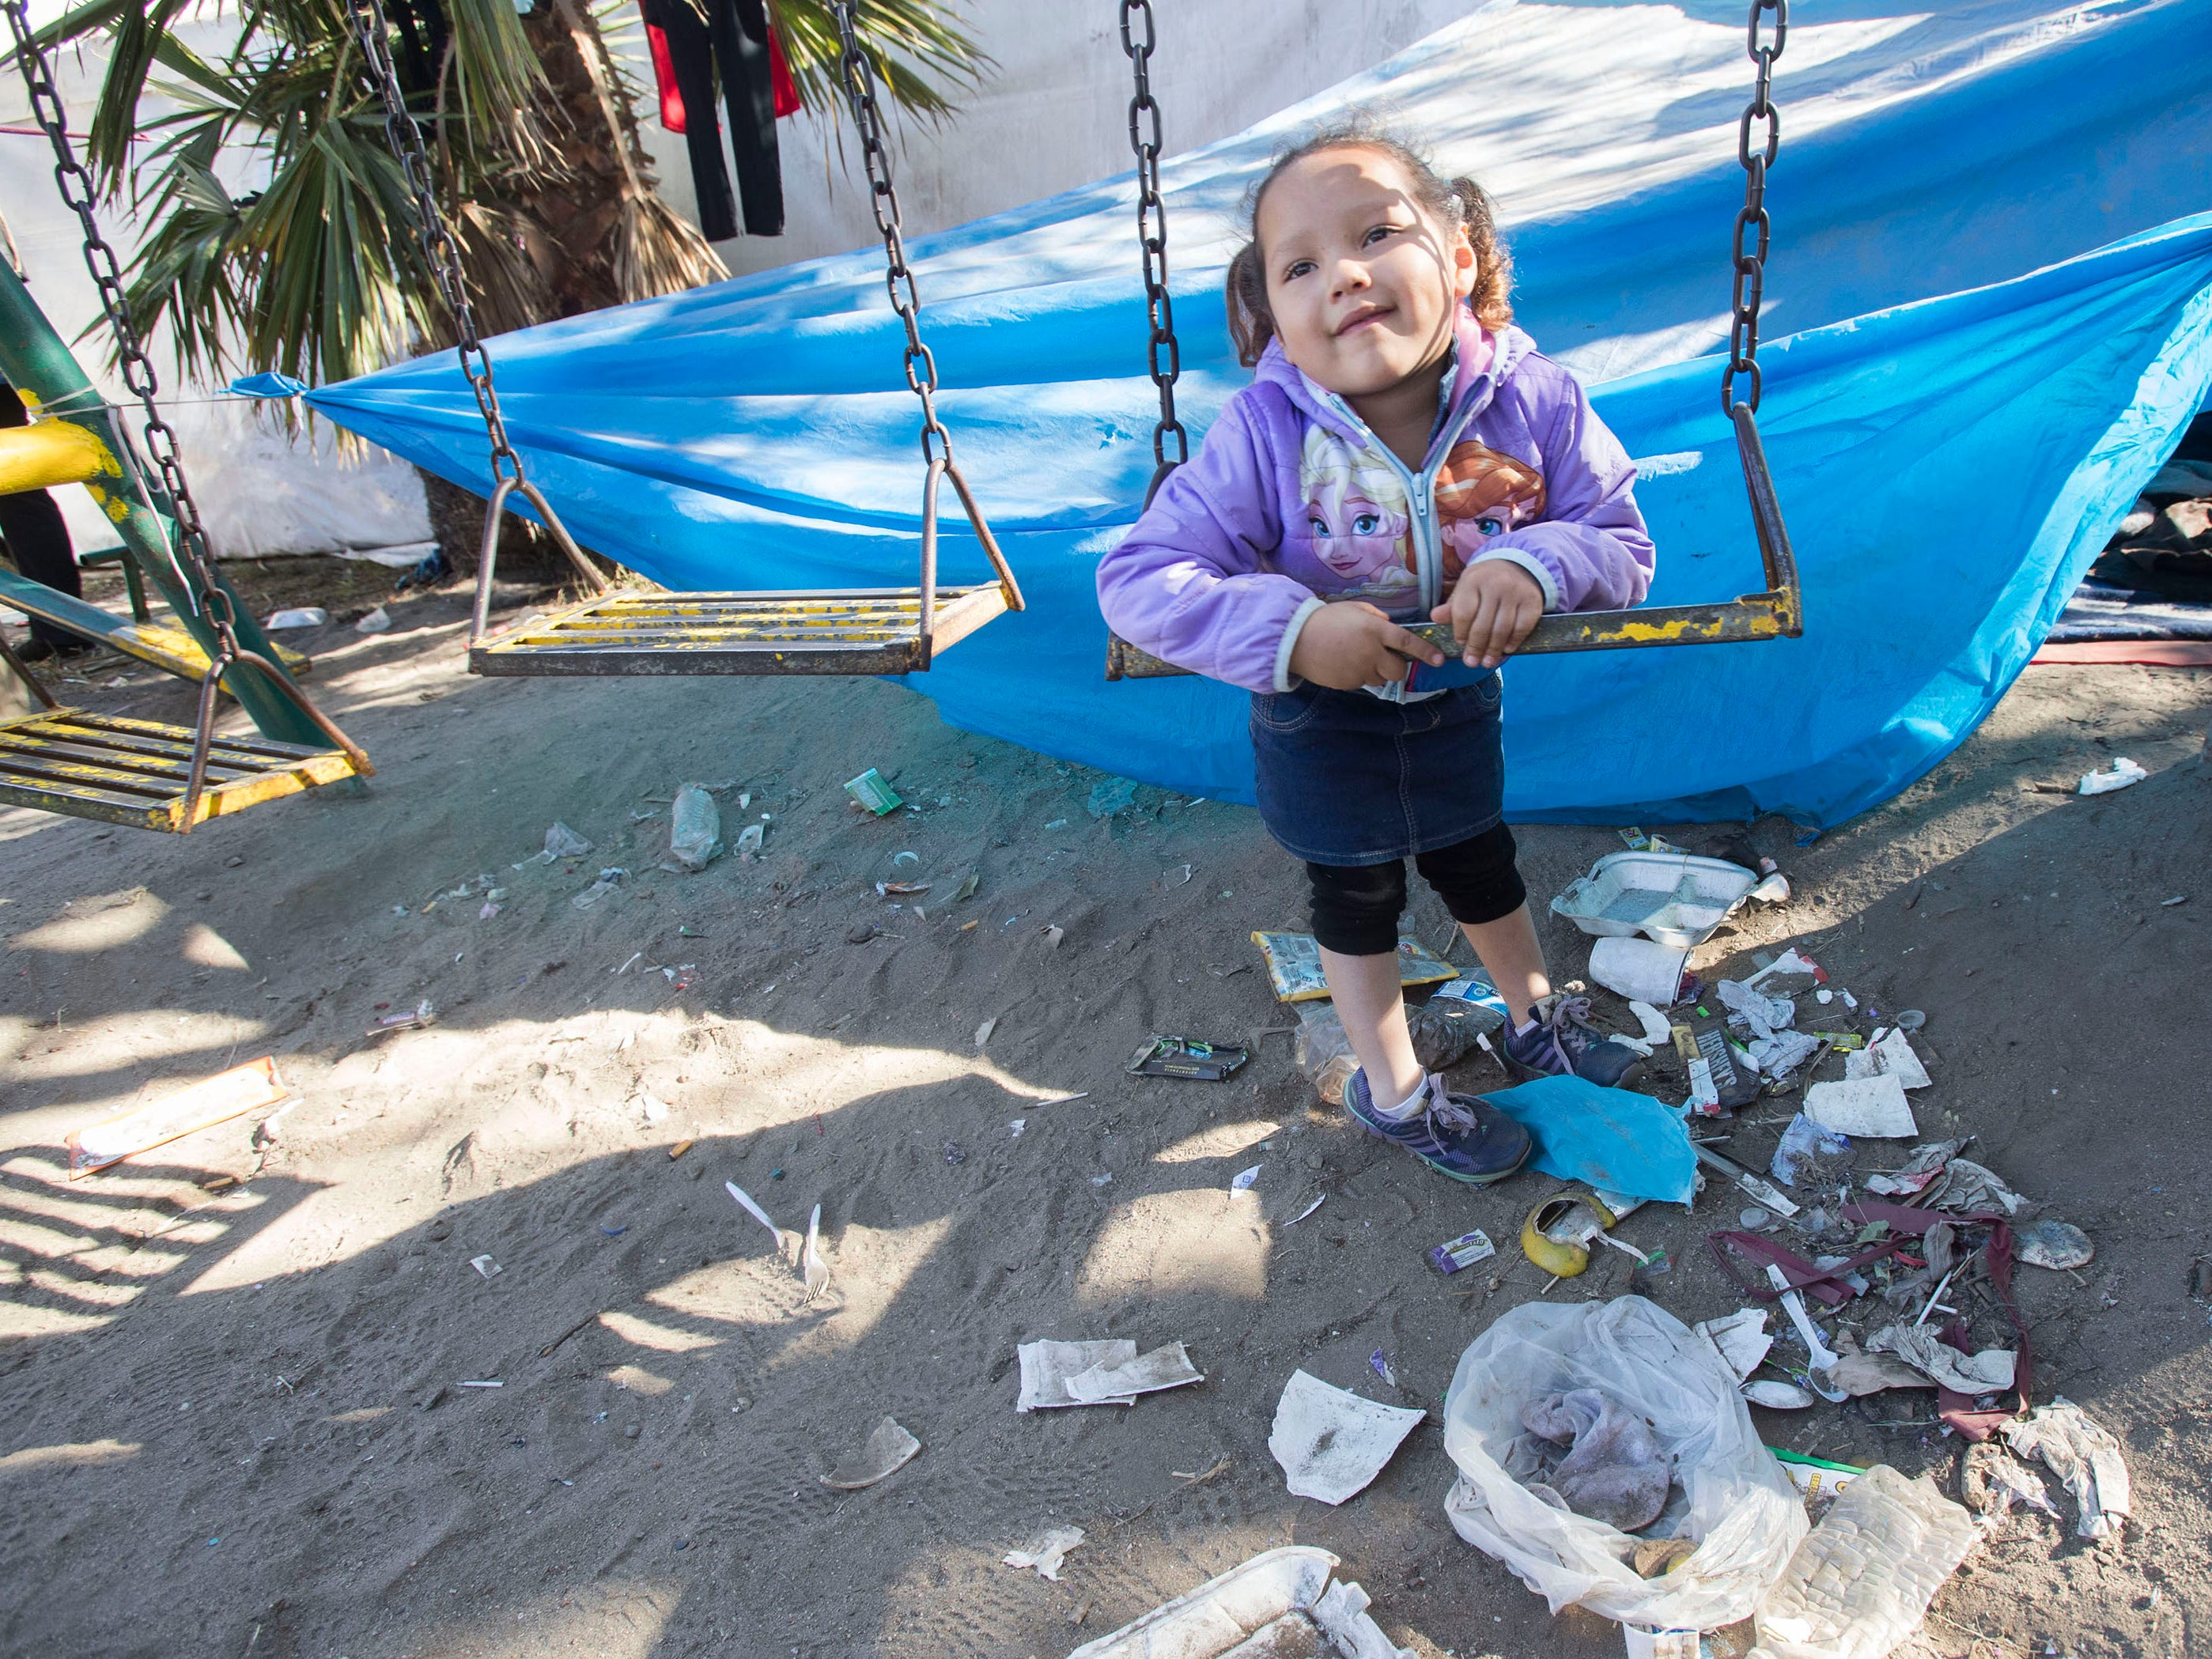 Marbella Figueroa, a three-year-old, plays on a swing as thrash sits at her feet at the Benito Juarez sports complex shelter, Nov. 27, 2018, in Tijuana, Mexico.